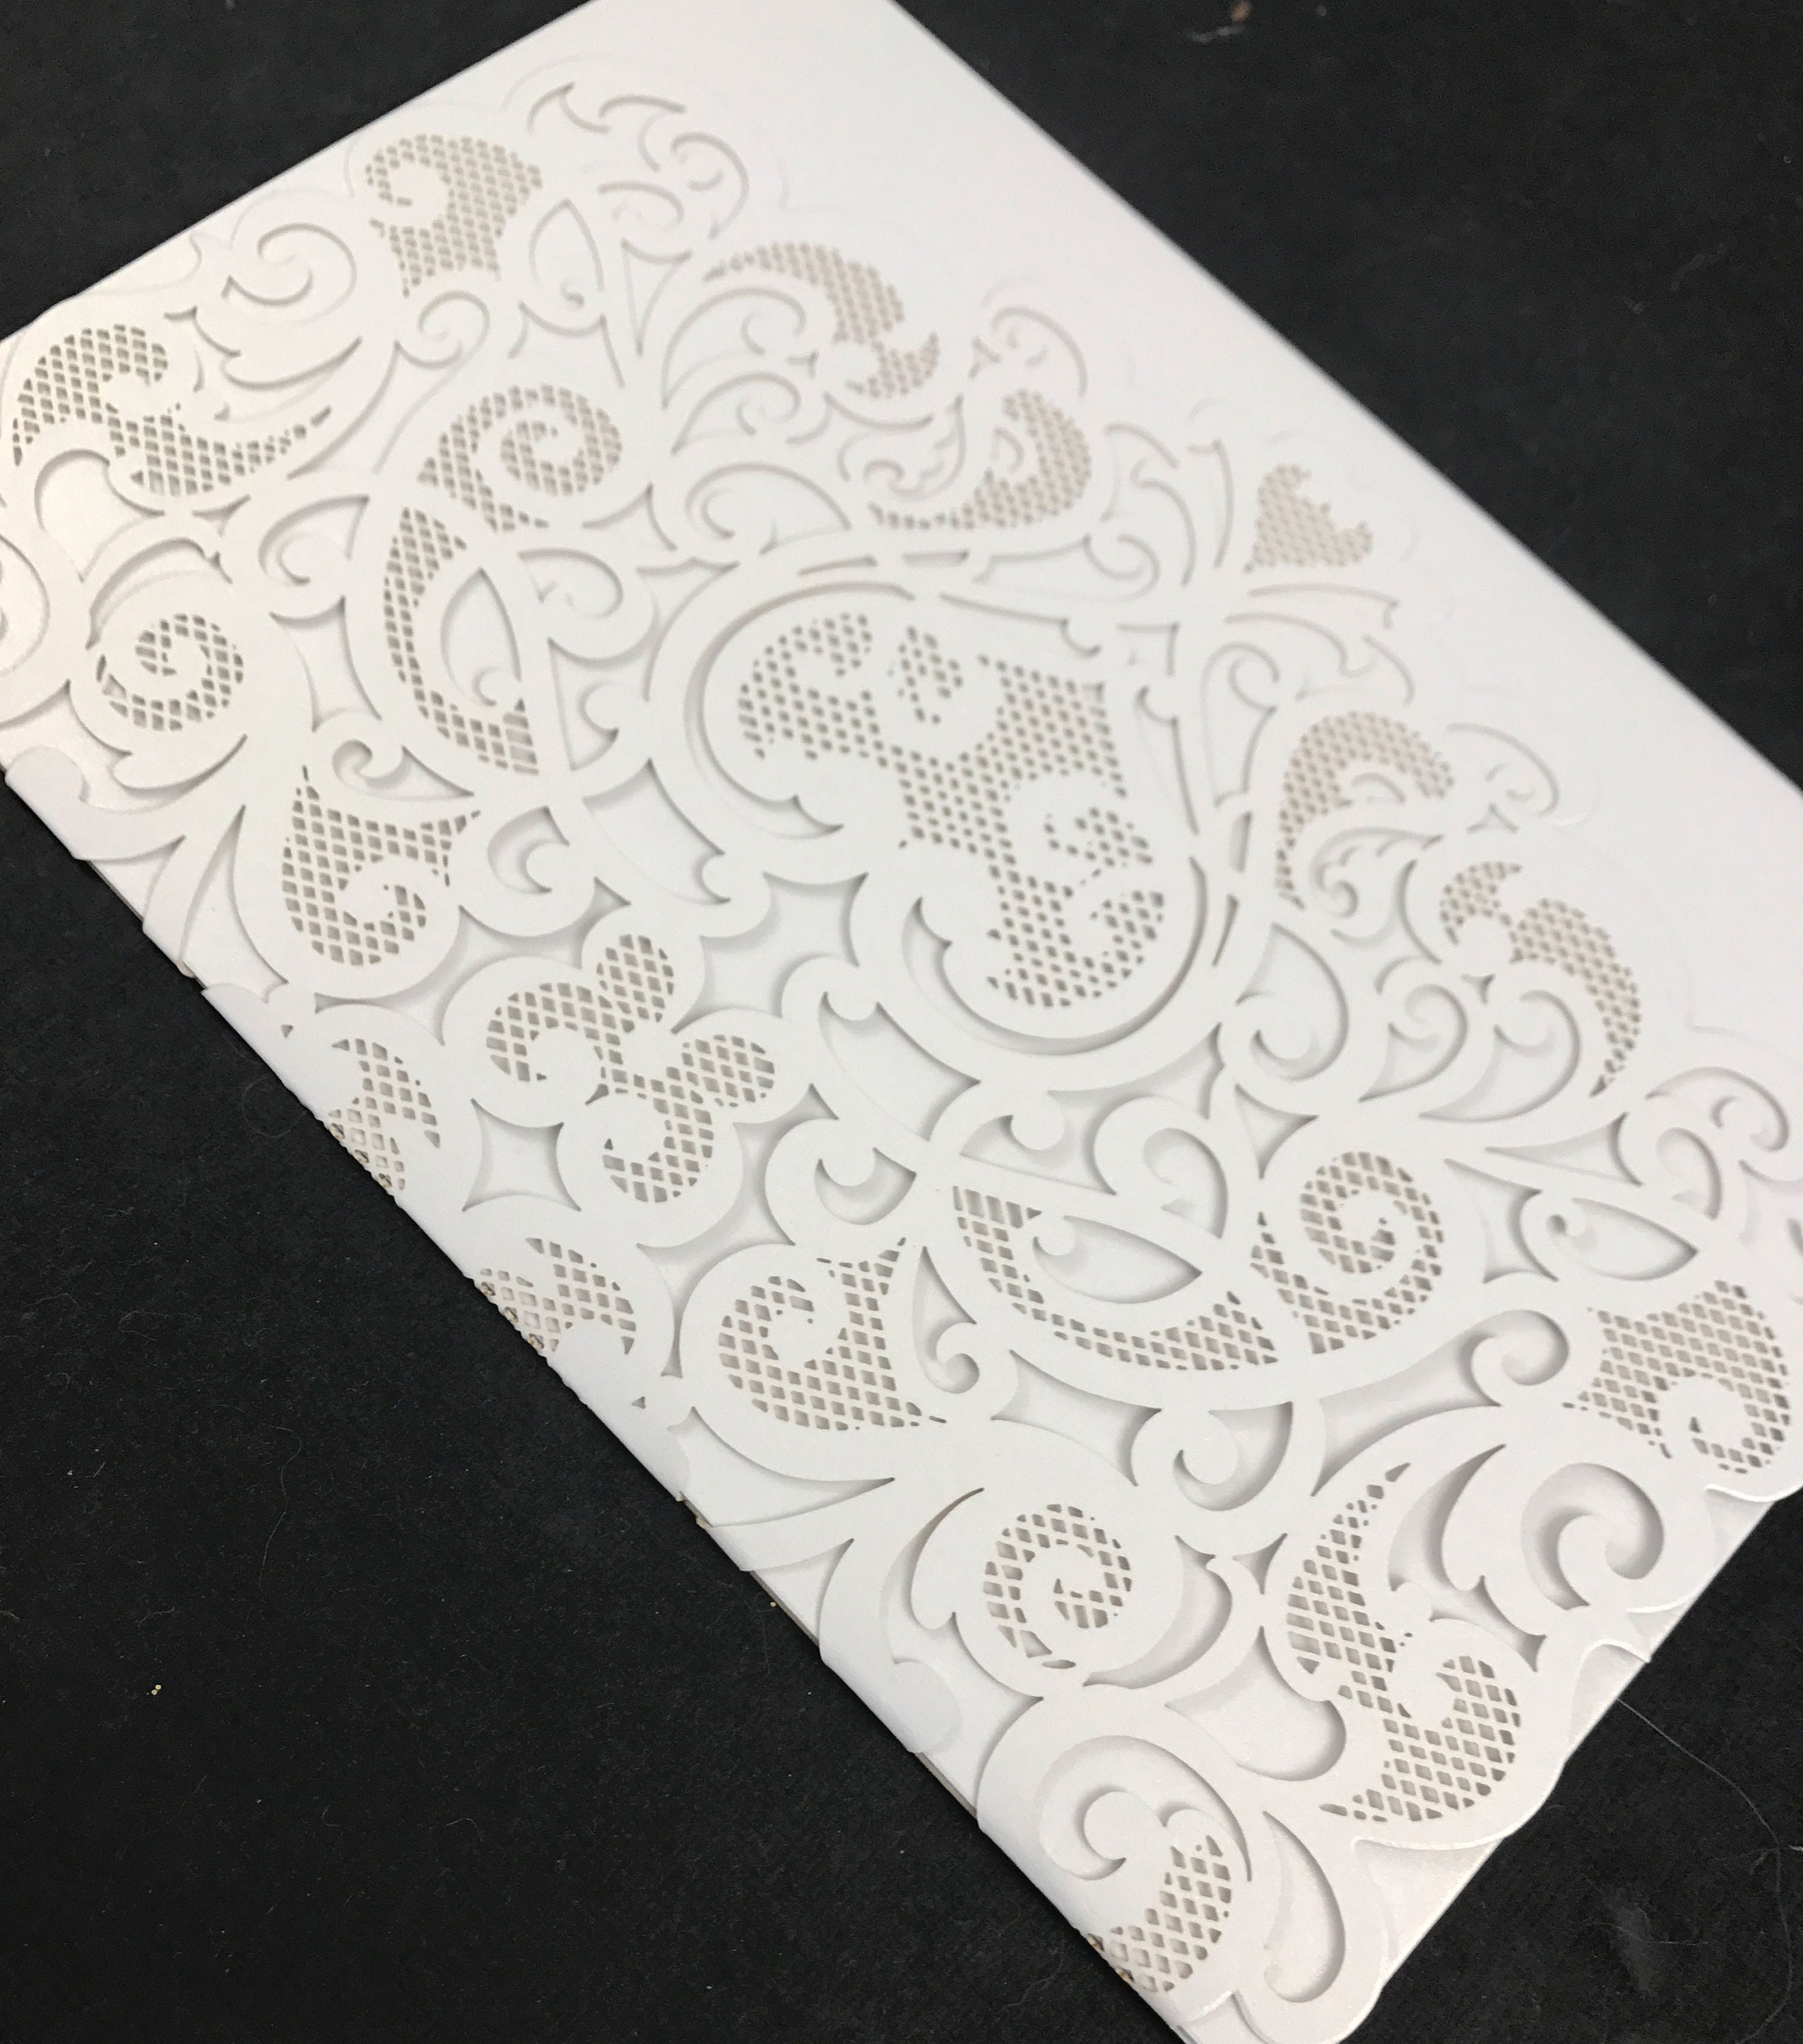 50: Diy Pocket Wedding Invitation Laser Cut At Reisefeber.org